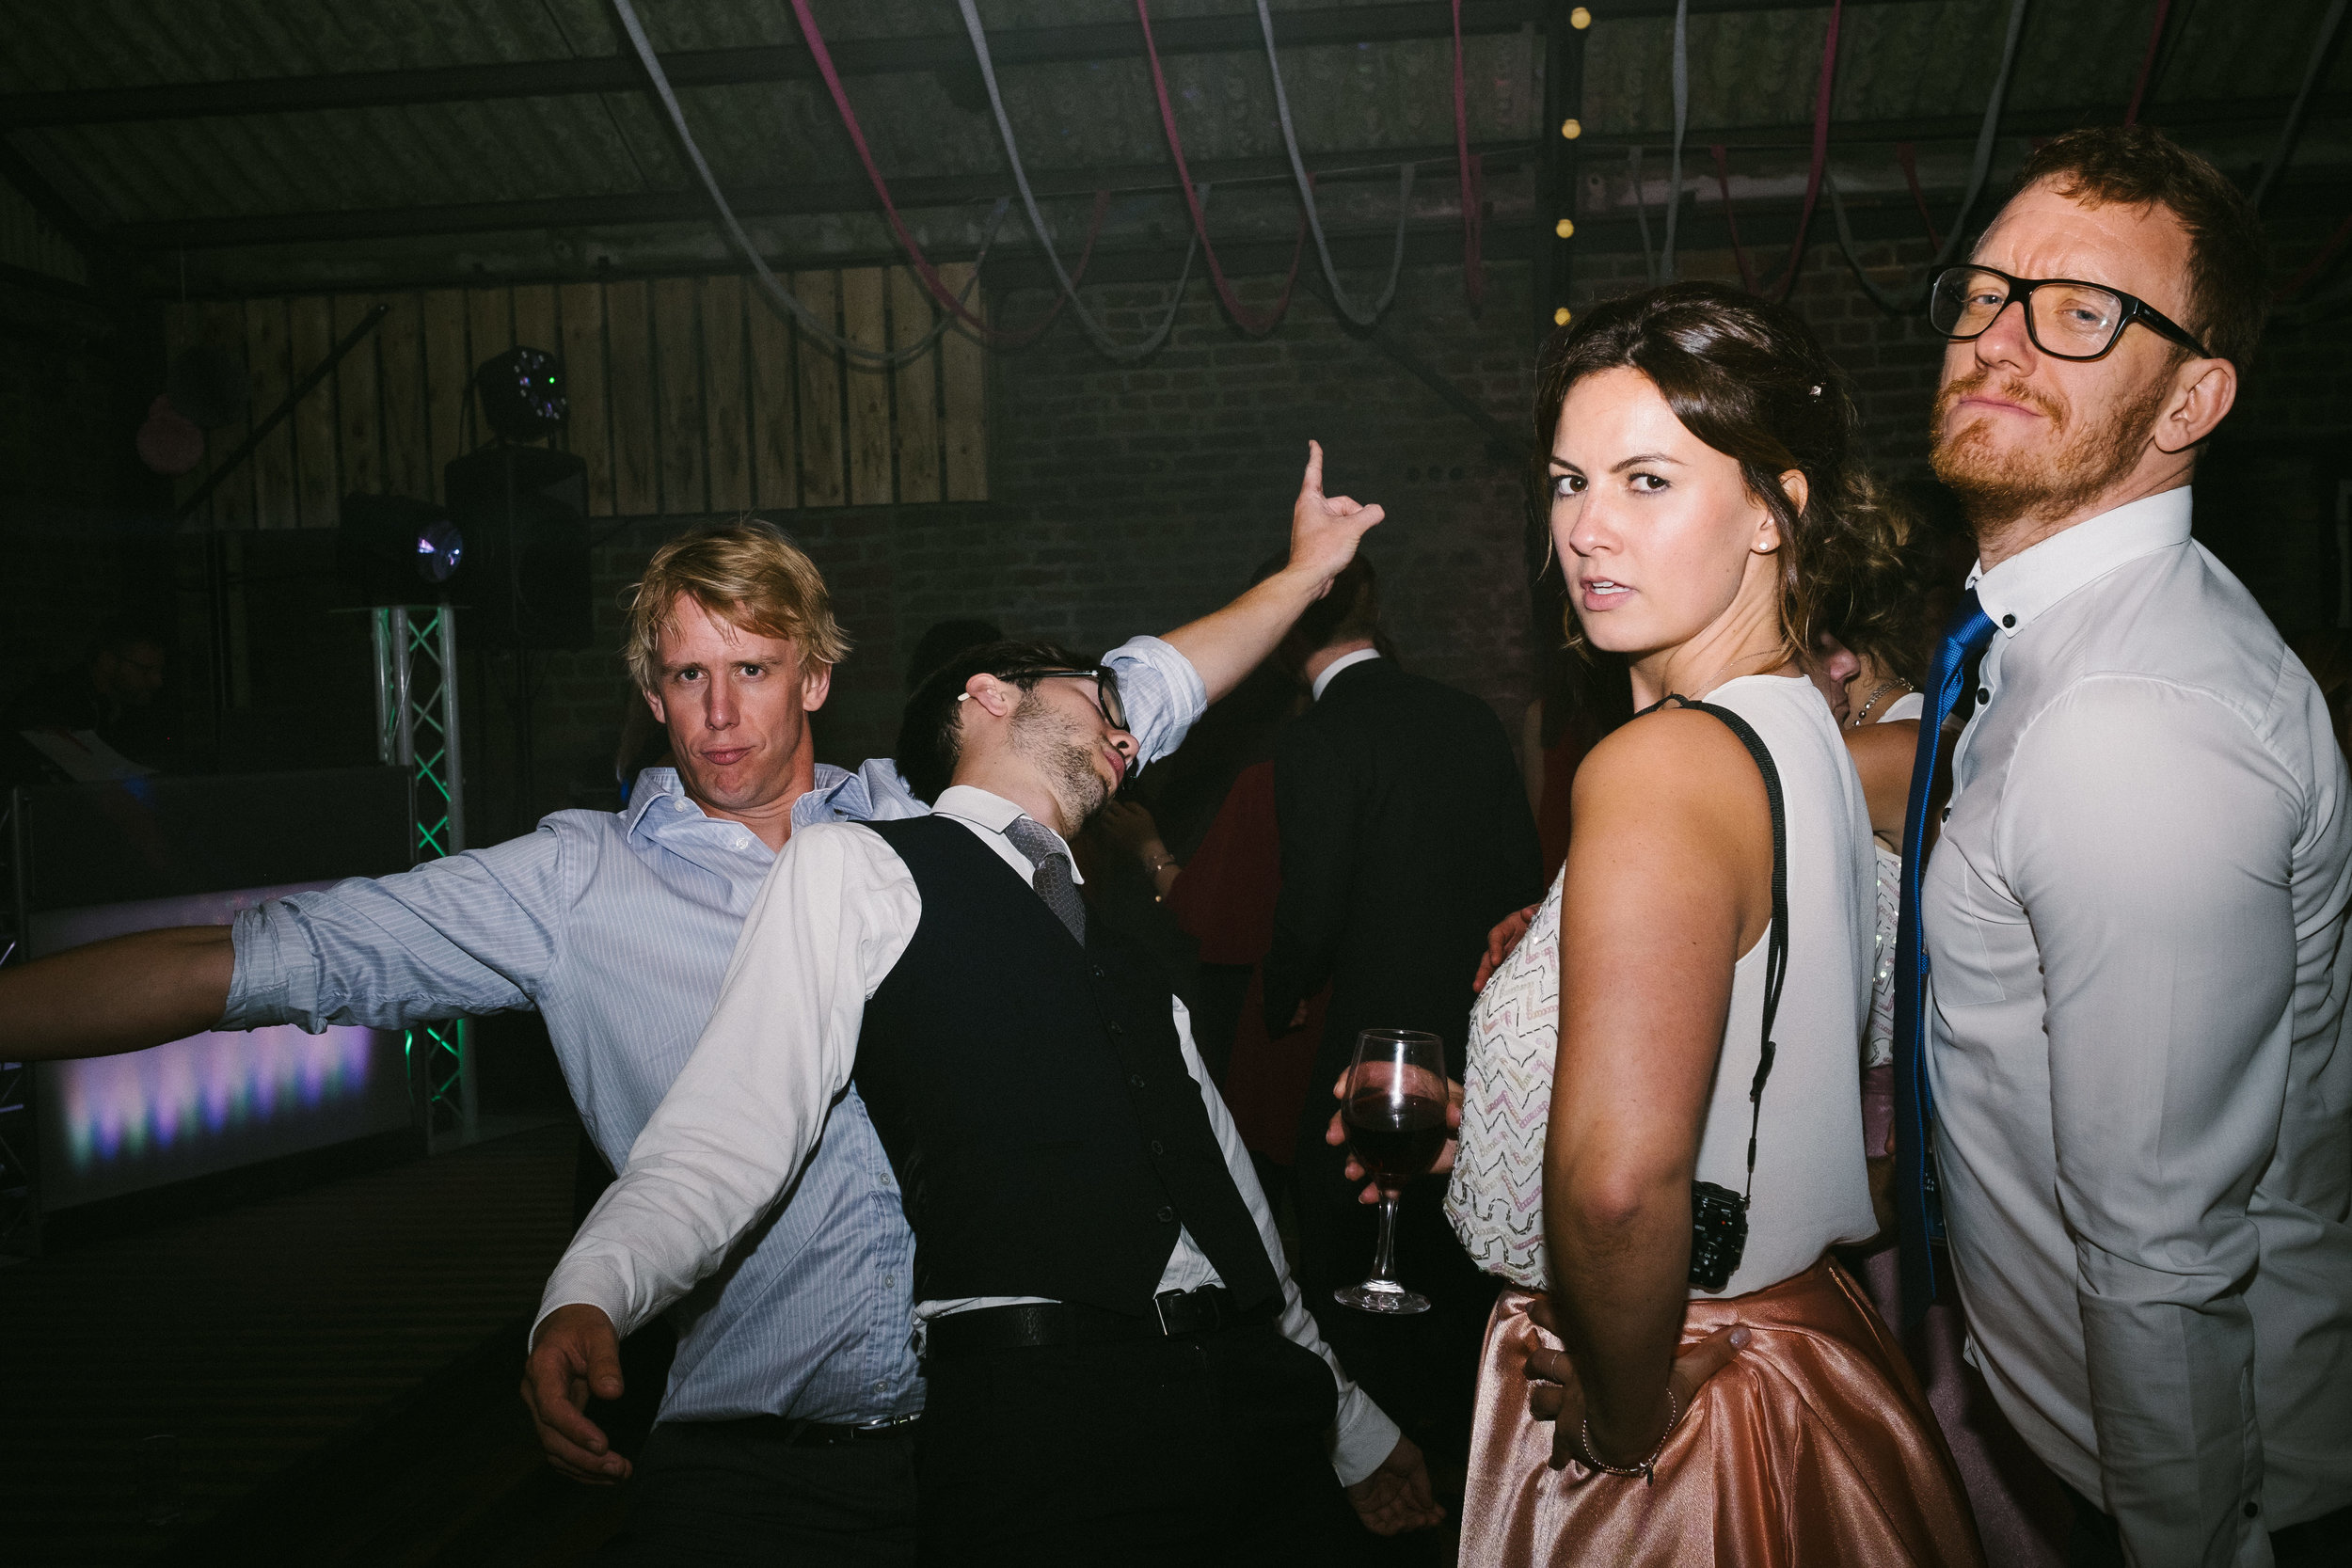 Guests pose on the dancefloor at Dale Farm Yorkshire